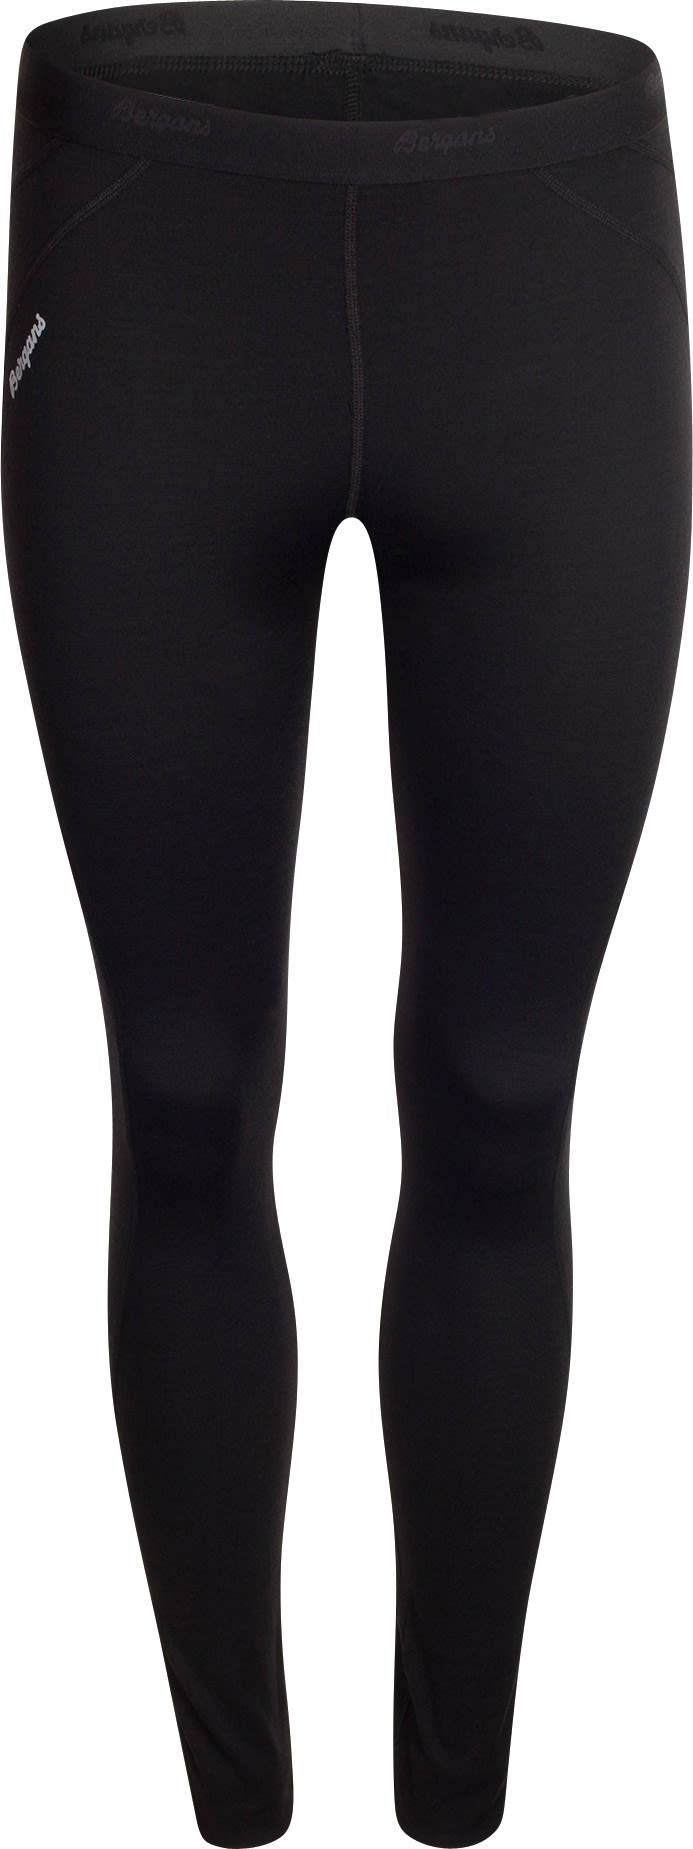 Bergans Fjellrapp Tights Schwarz, Female Merino Tights, XS